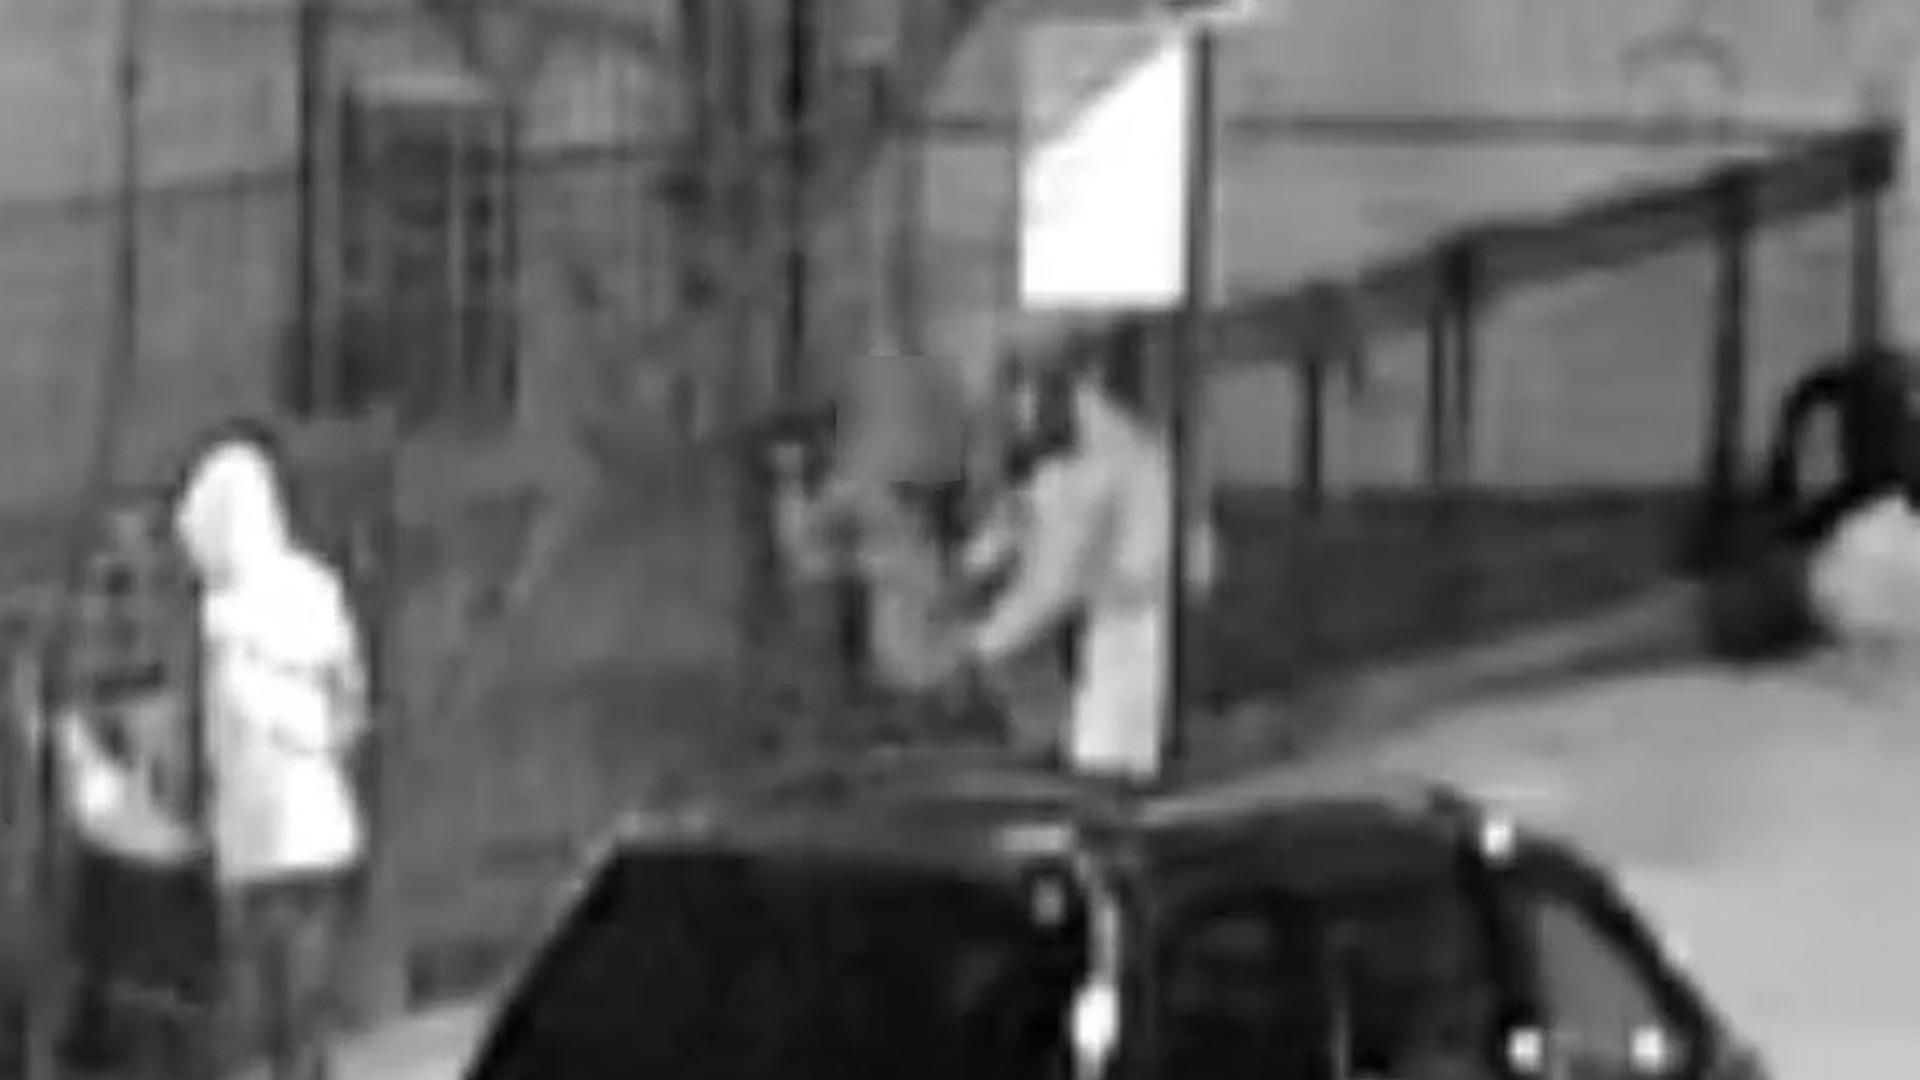 Armed crook shoves gun into woman's ribs, takes purse, cellphone during Harlem robbery: cops